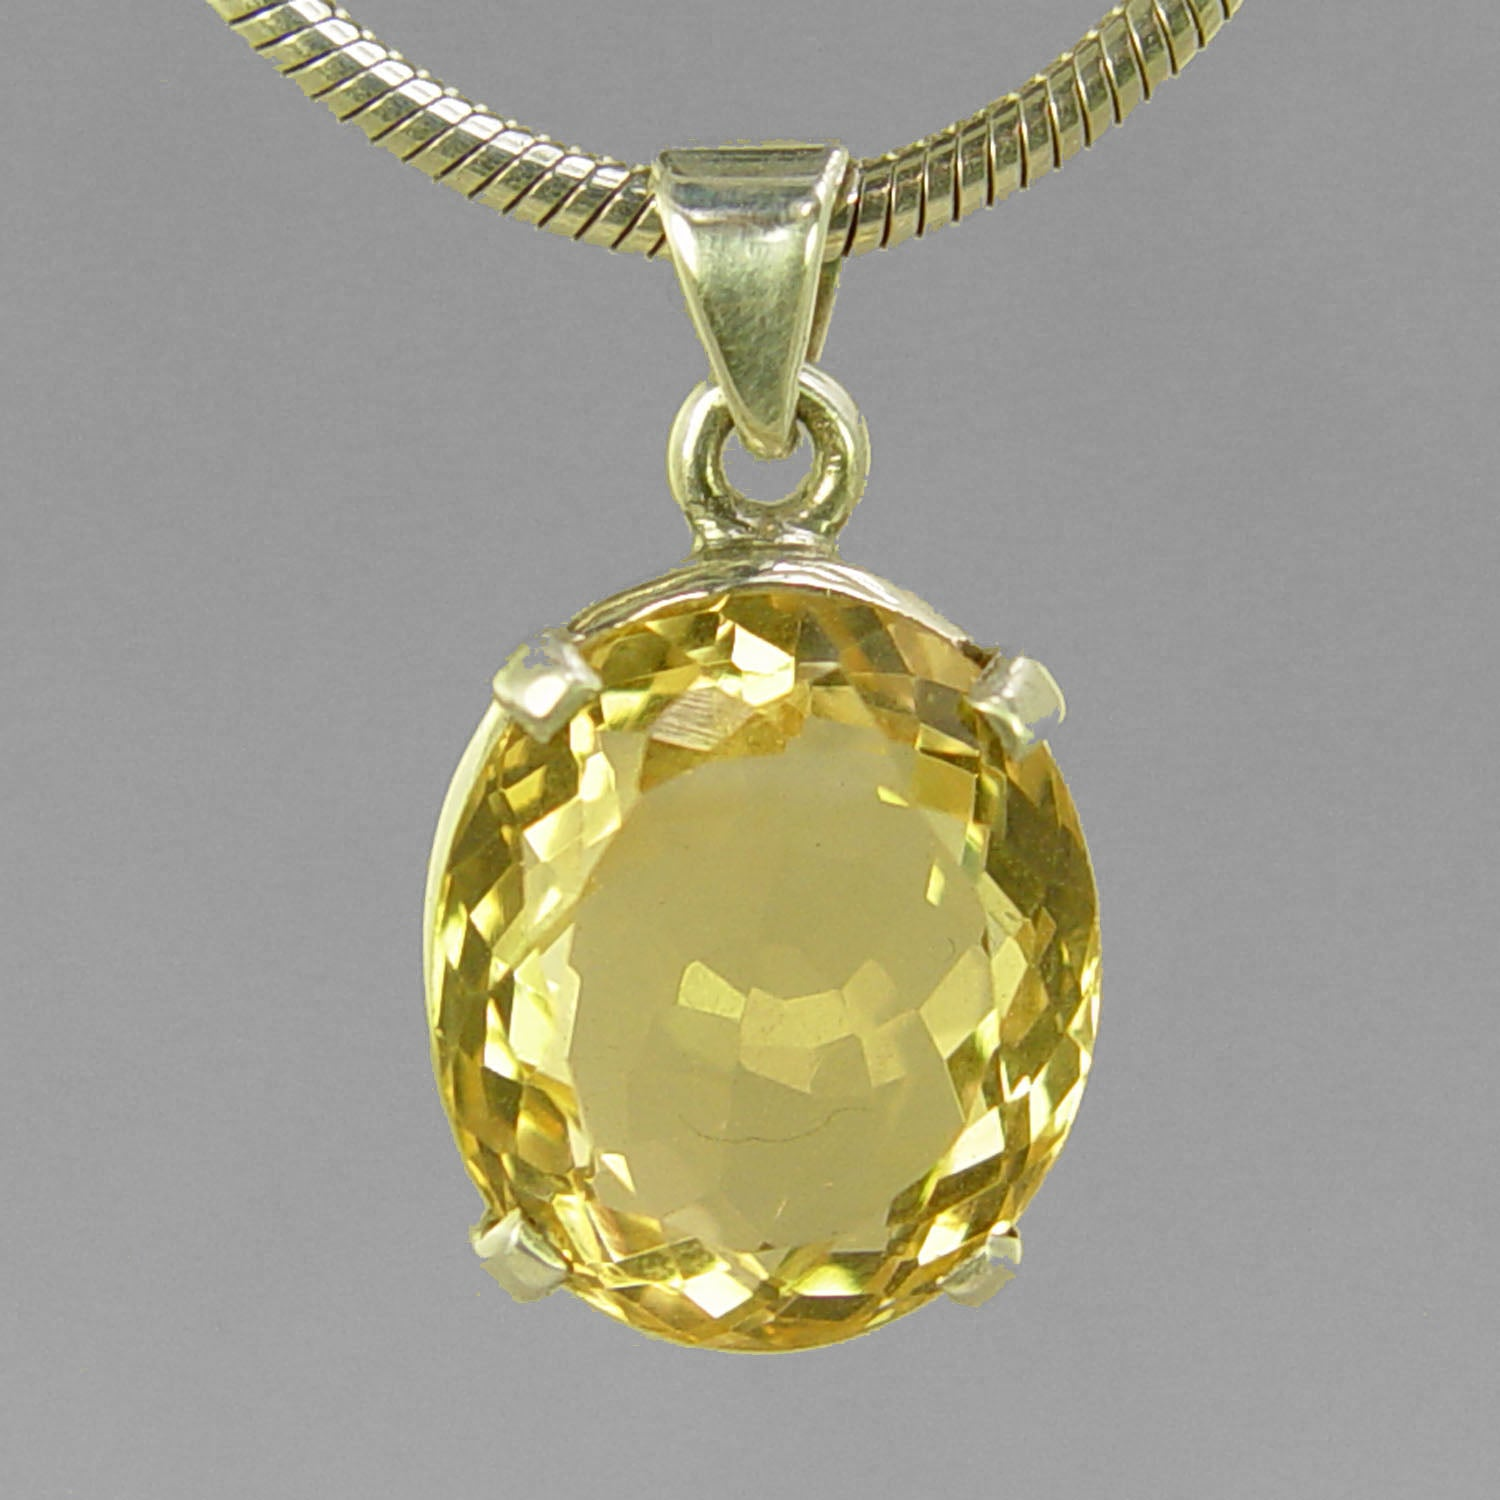 Citrine 12.1 ct Oval Prong Set Sterling Silver Pendant